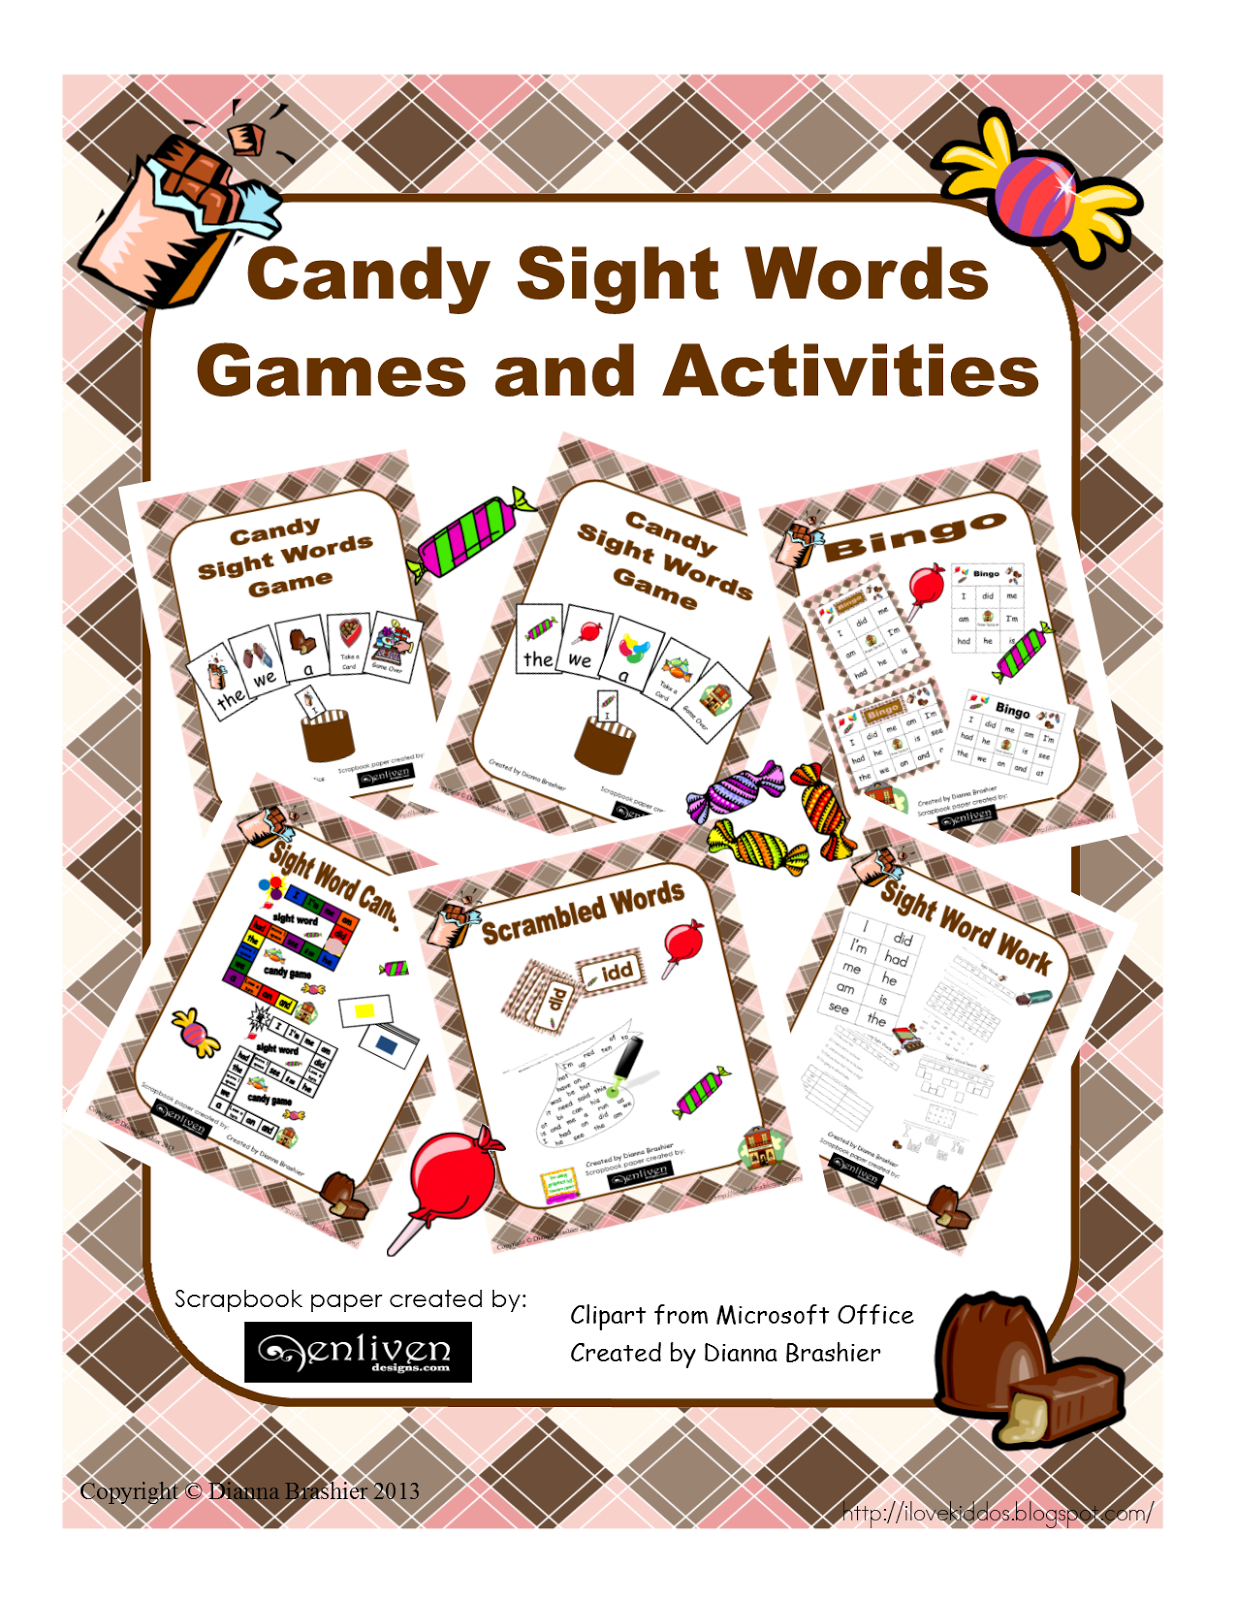 Teachers R Us Candy Sight Word Activities